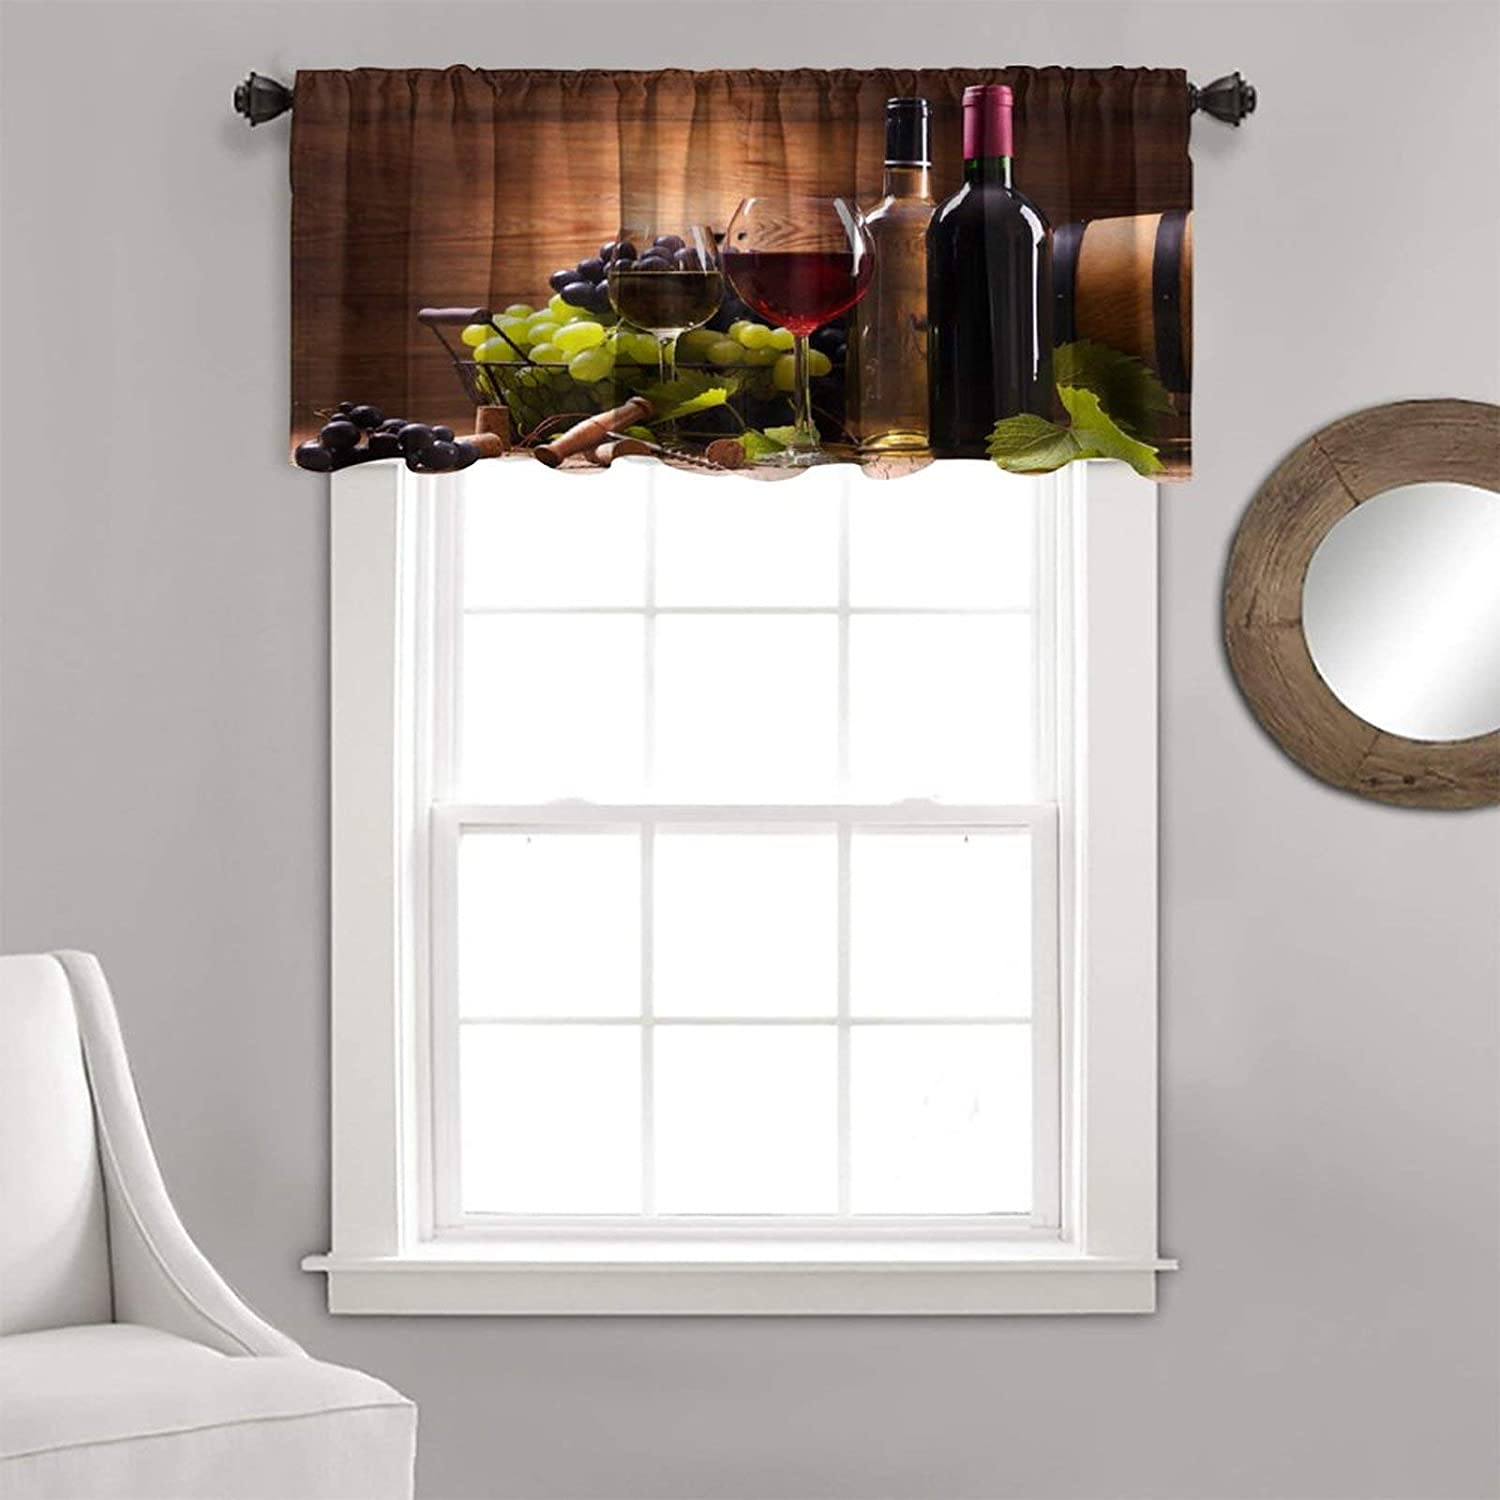 Kitchen Curtain Valance Special price Winery Decor Gl Red Bottles New popularity Wine Barrels